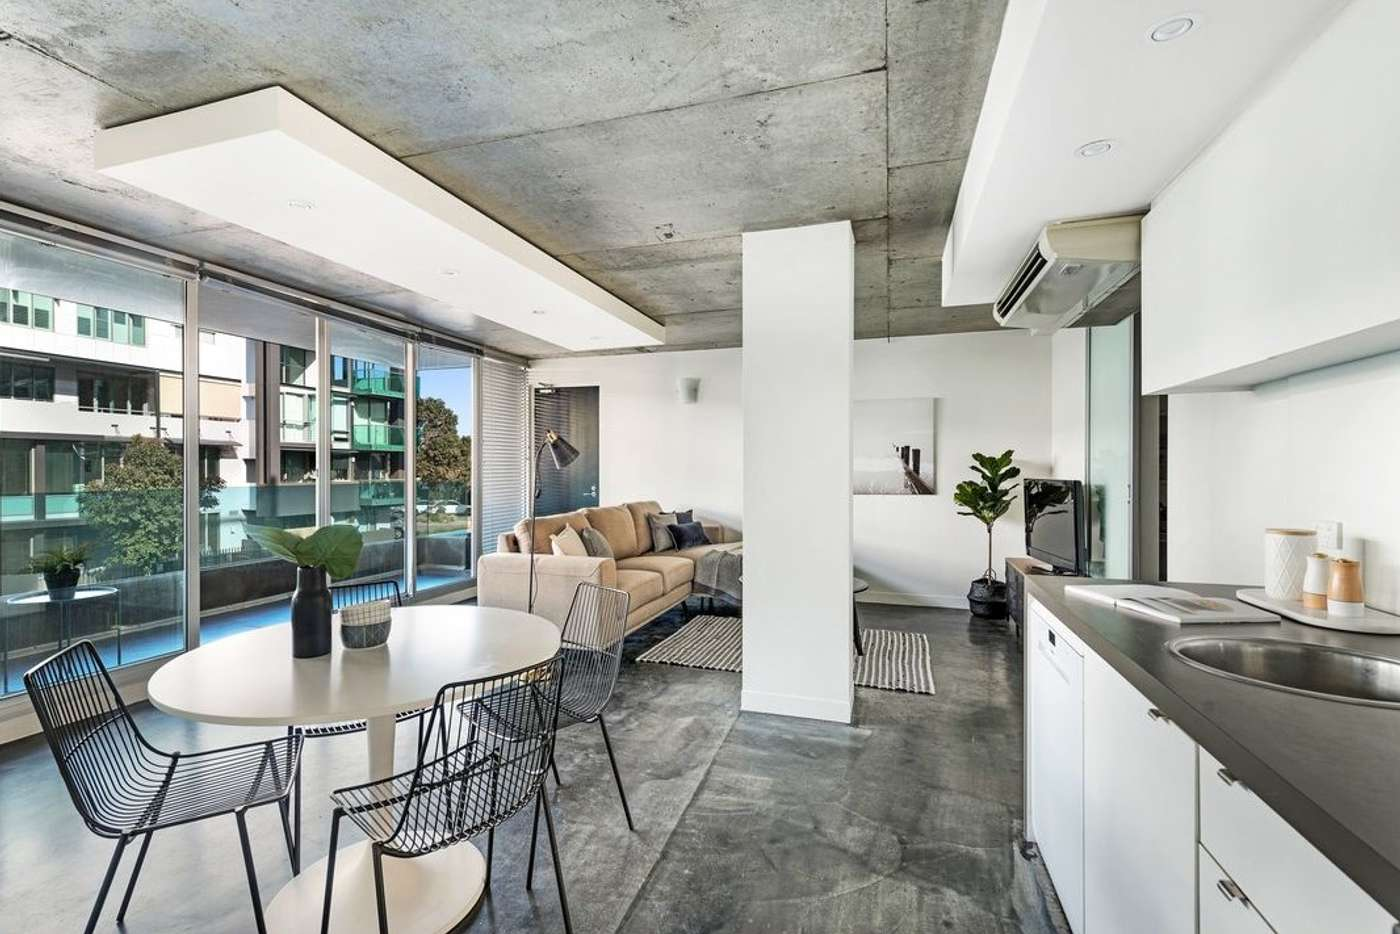 Main view of Homely apartment listing, 10/33 Johnston Street, Port Melbourne VIC 3207